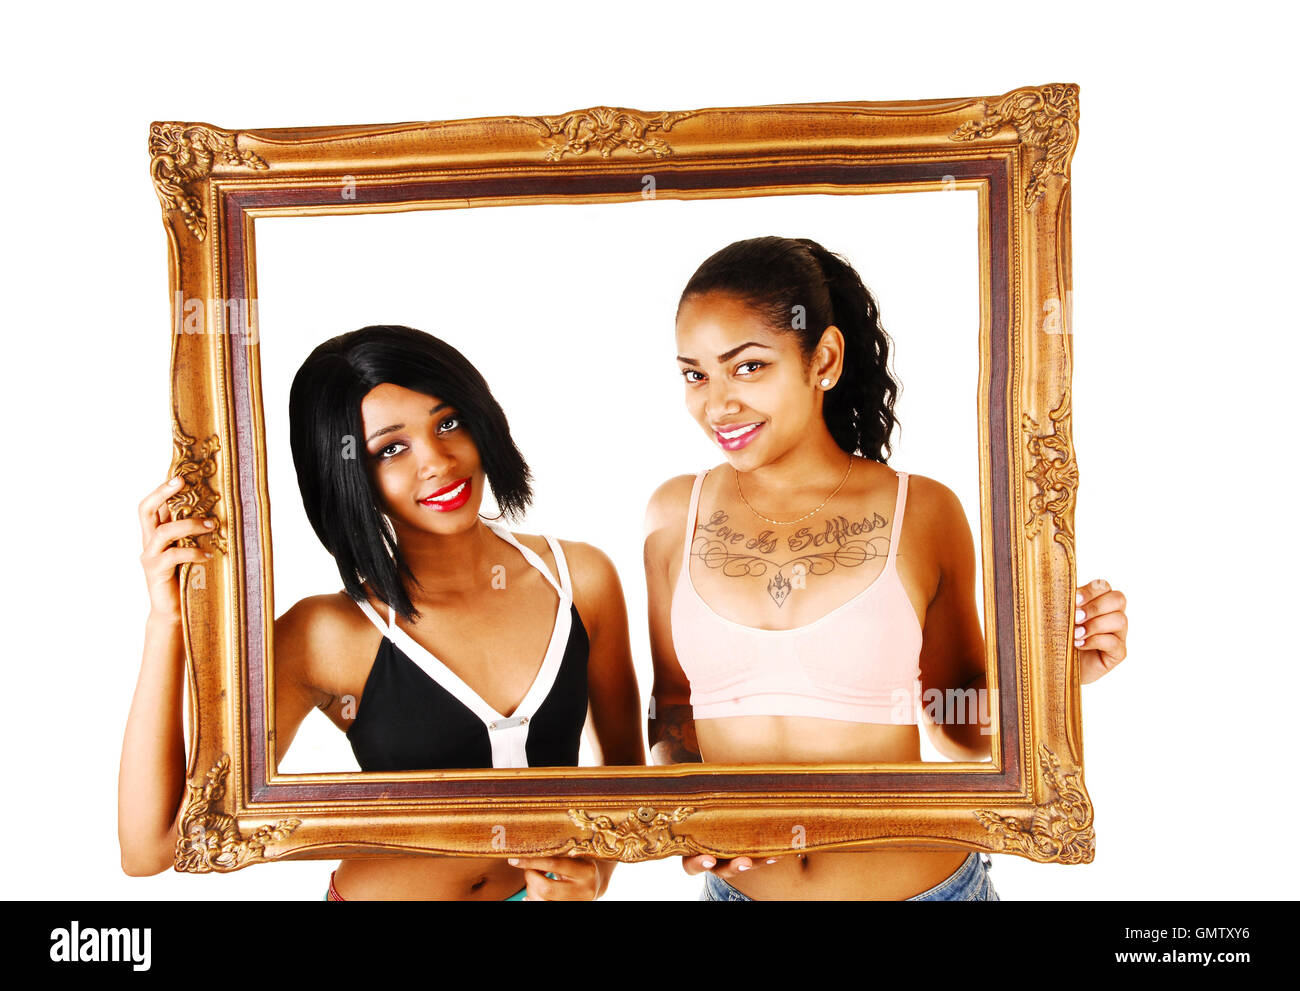 Framed Tattoo Art Stock Photos & Framed Tattoo Art Stock Images - Alamy